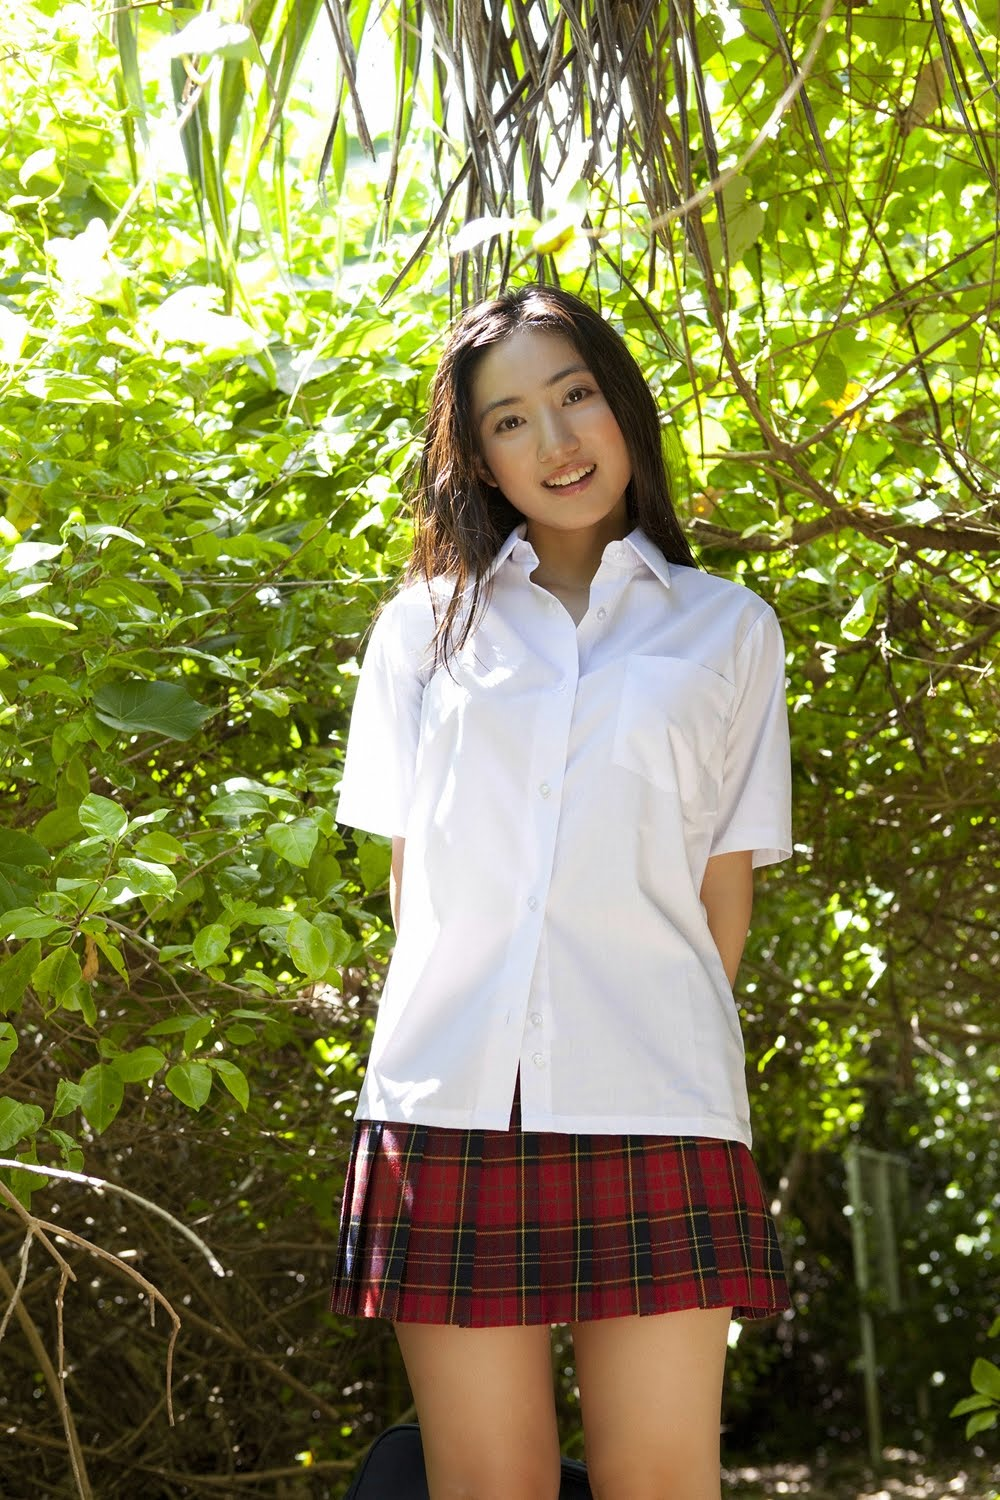 Meet the simple, cute and beautiful Saaya Irie from Japan